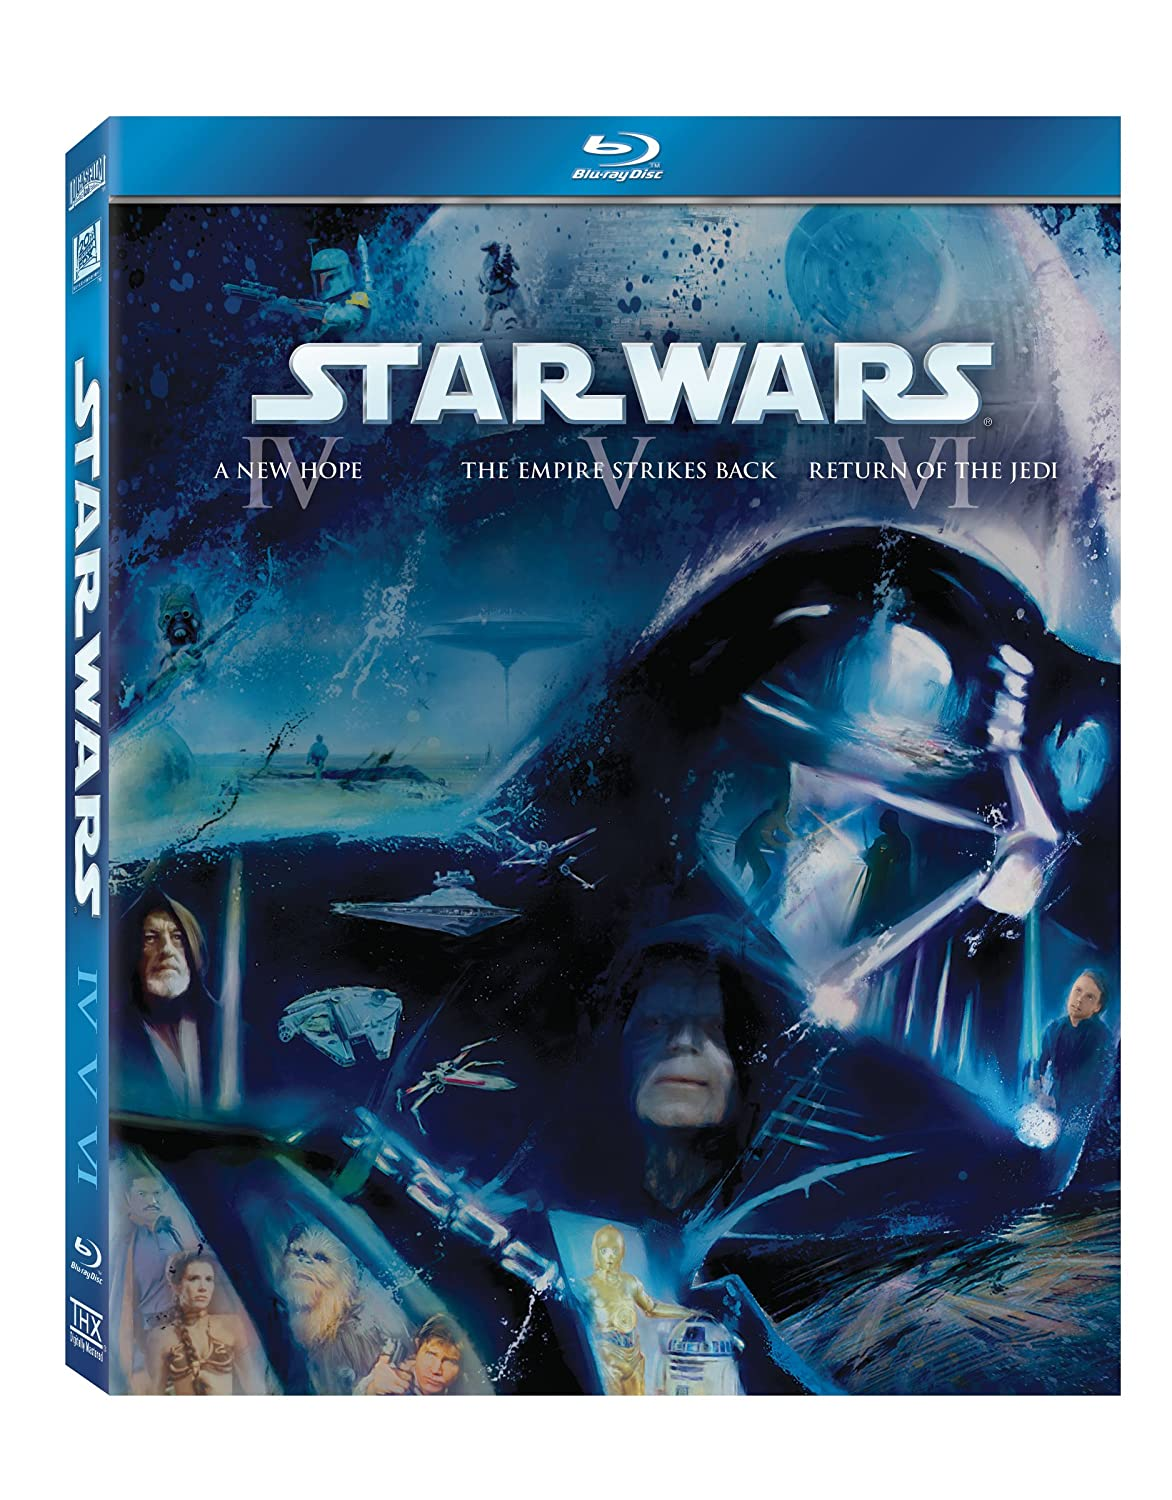 Star Wars: The Original Trilogy Episode Hope IV: Sales of SALE items from new works A New Max 85% OFF Episod